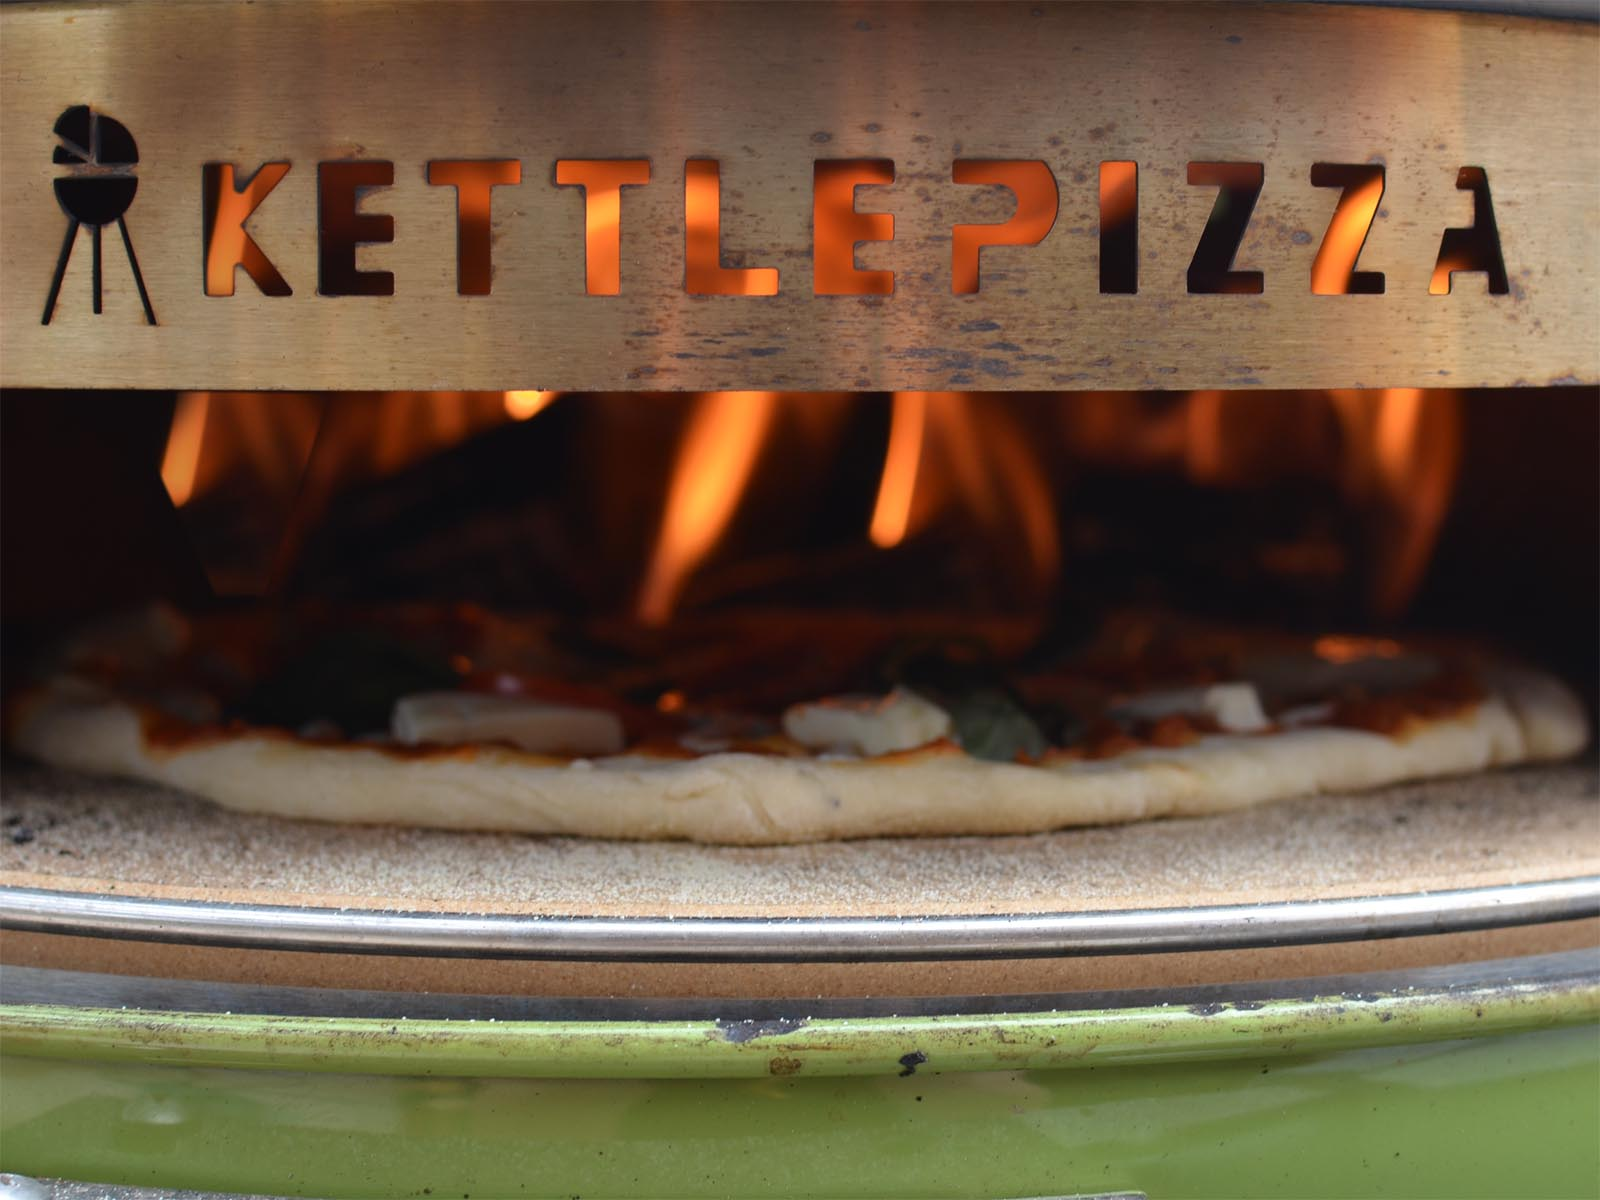 kettle-pizza-weber-conversion